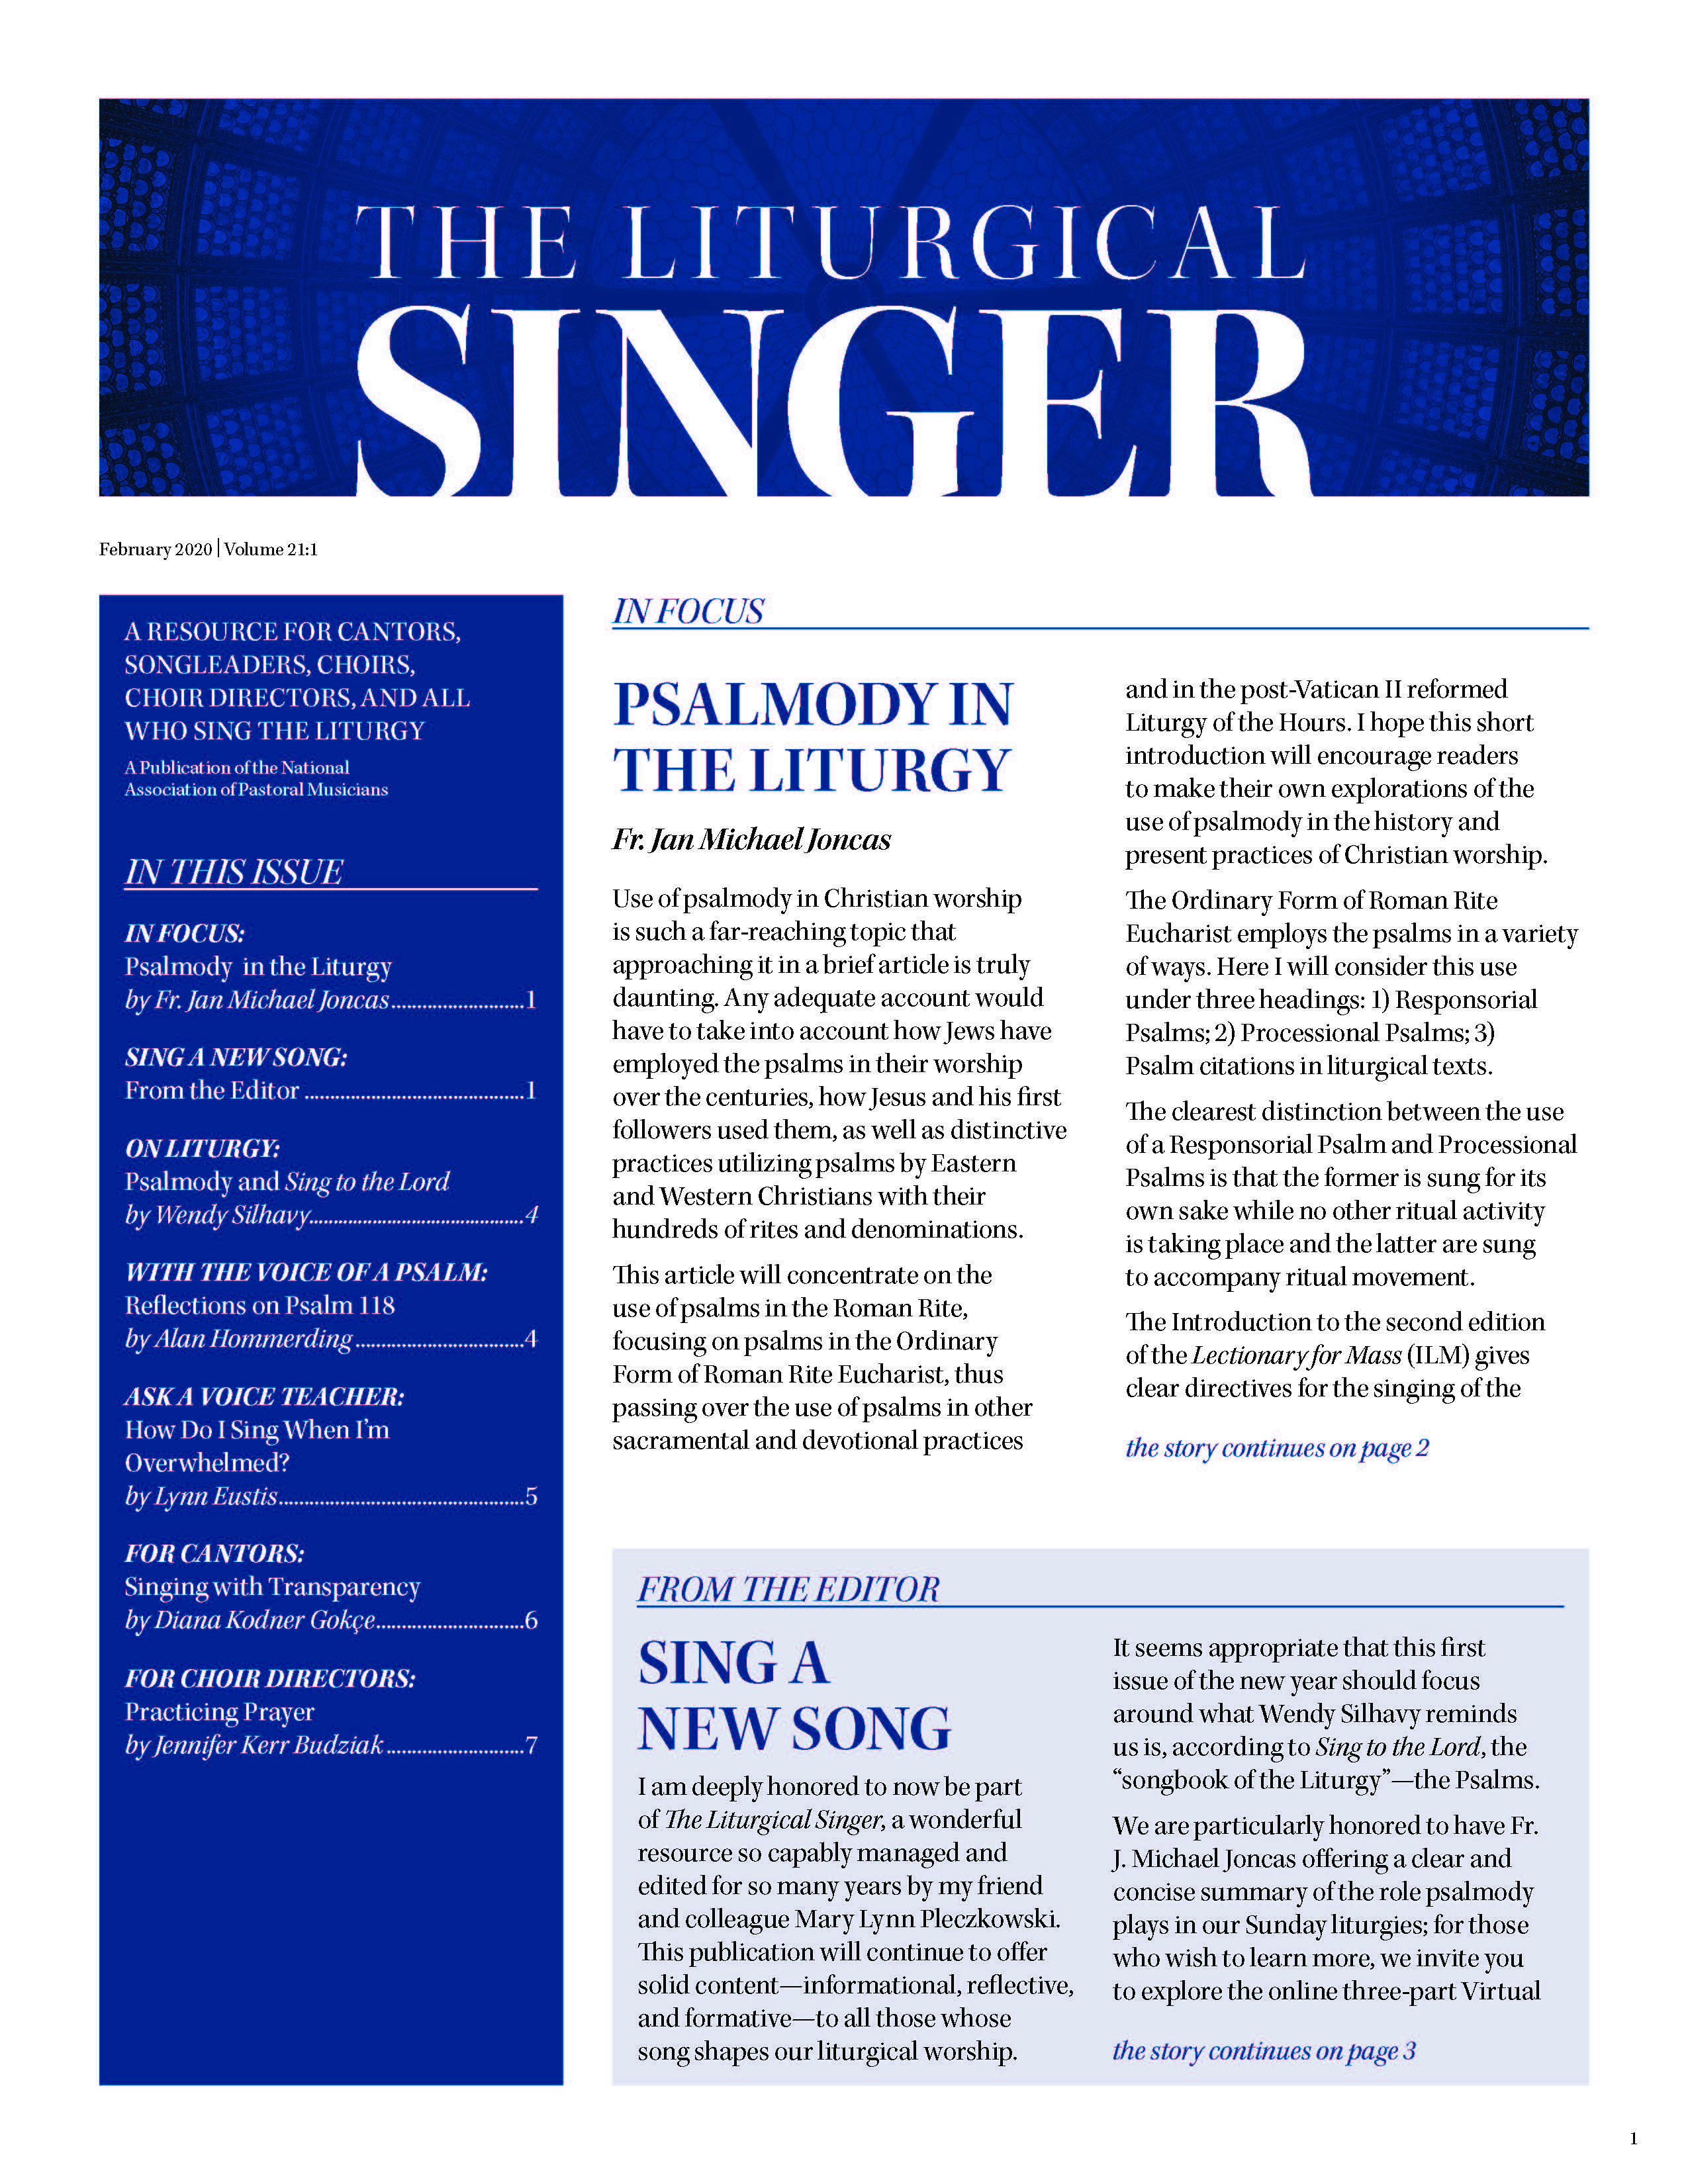 Liturgical Singer Feb Issue